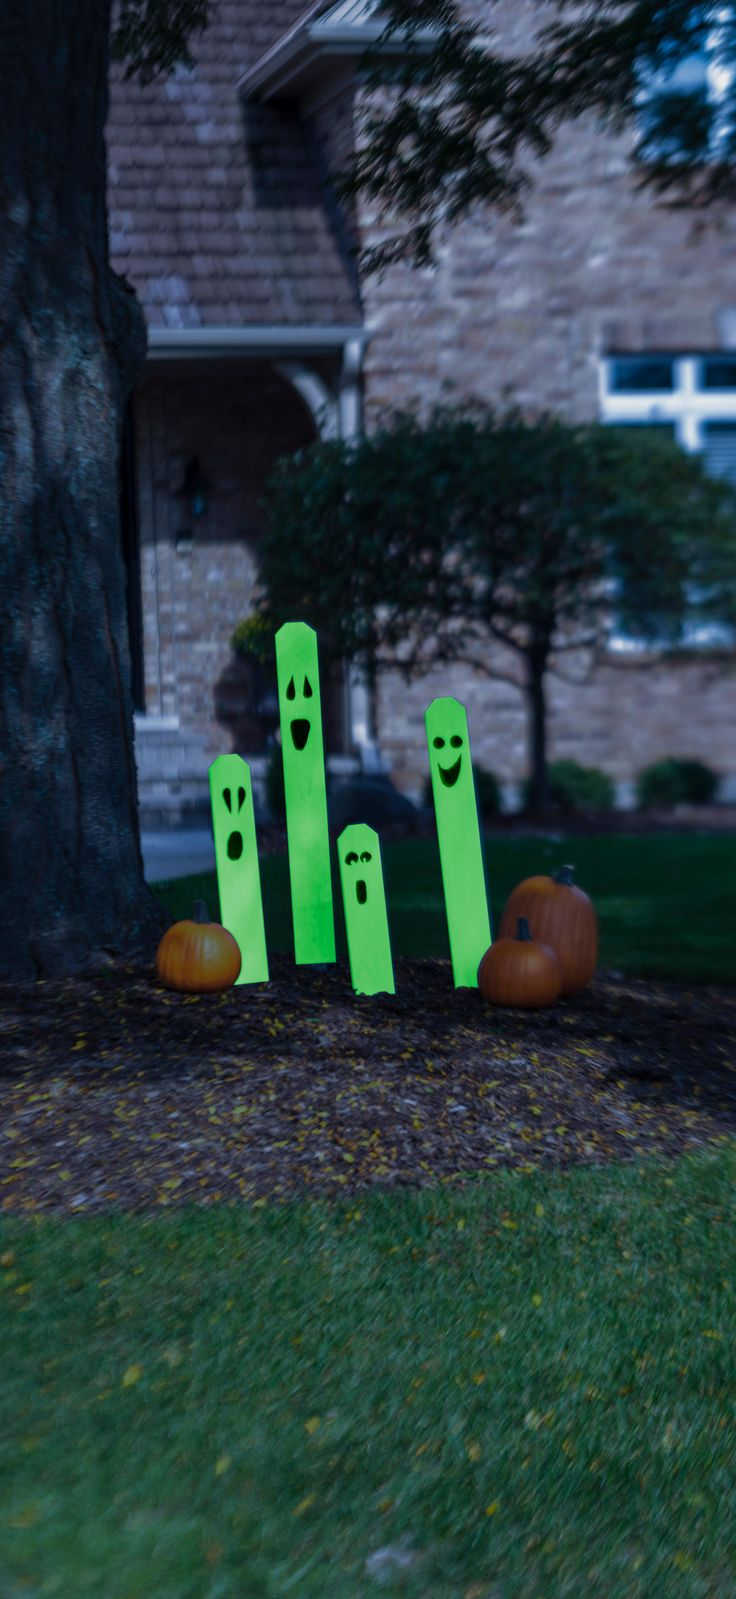 The only thing spookier than what you can't see in the dark on Halloween is what you can! Give trick or treaters a real scare with these DIY Glow-In-The-Dark Fence Post Ghosts. You can make them yourself in a few simple steps, just in time for Halloween.